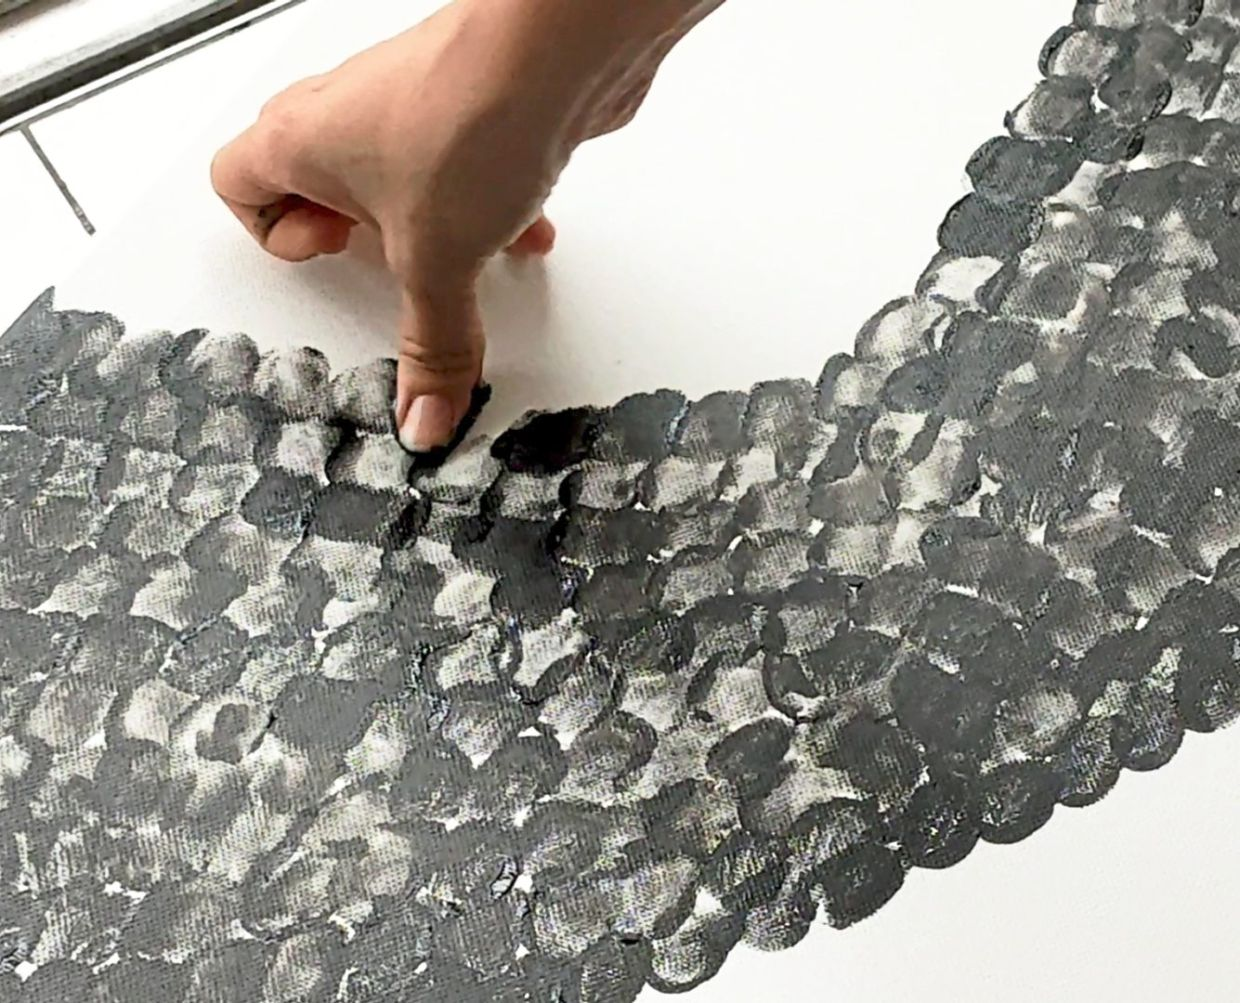 Creating the portrait took thousands of thumbprints, says Ng. Photo: Niuniu's Gallery